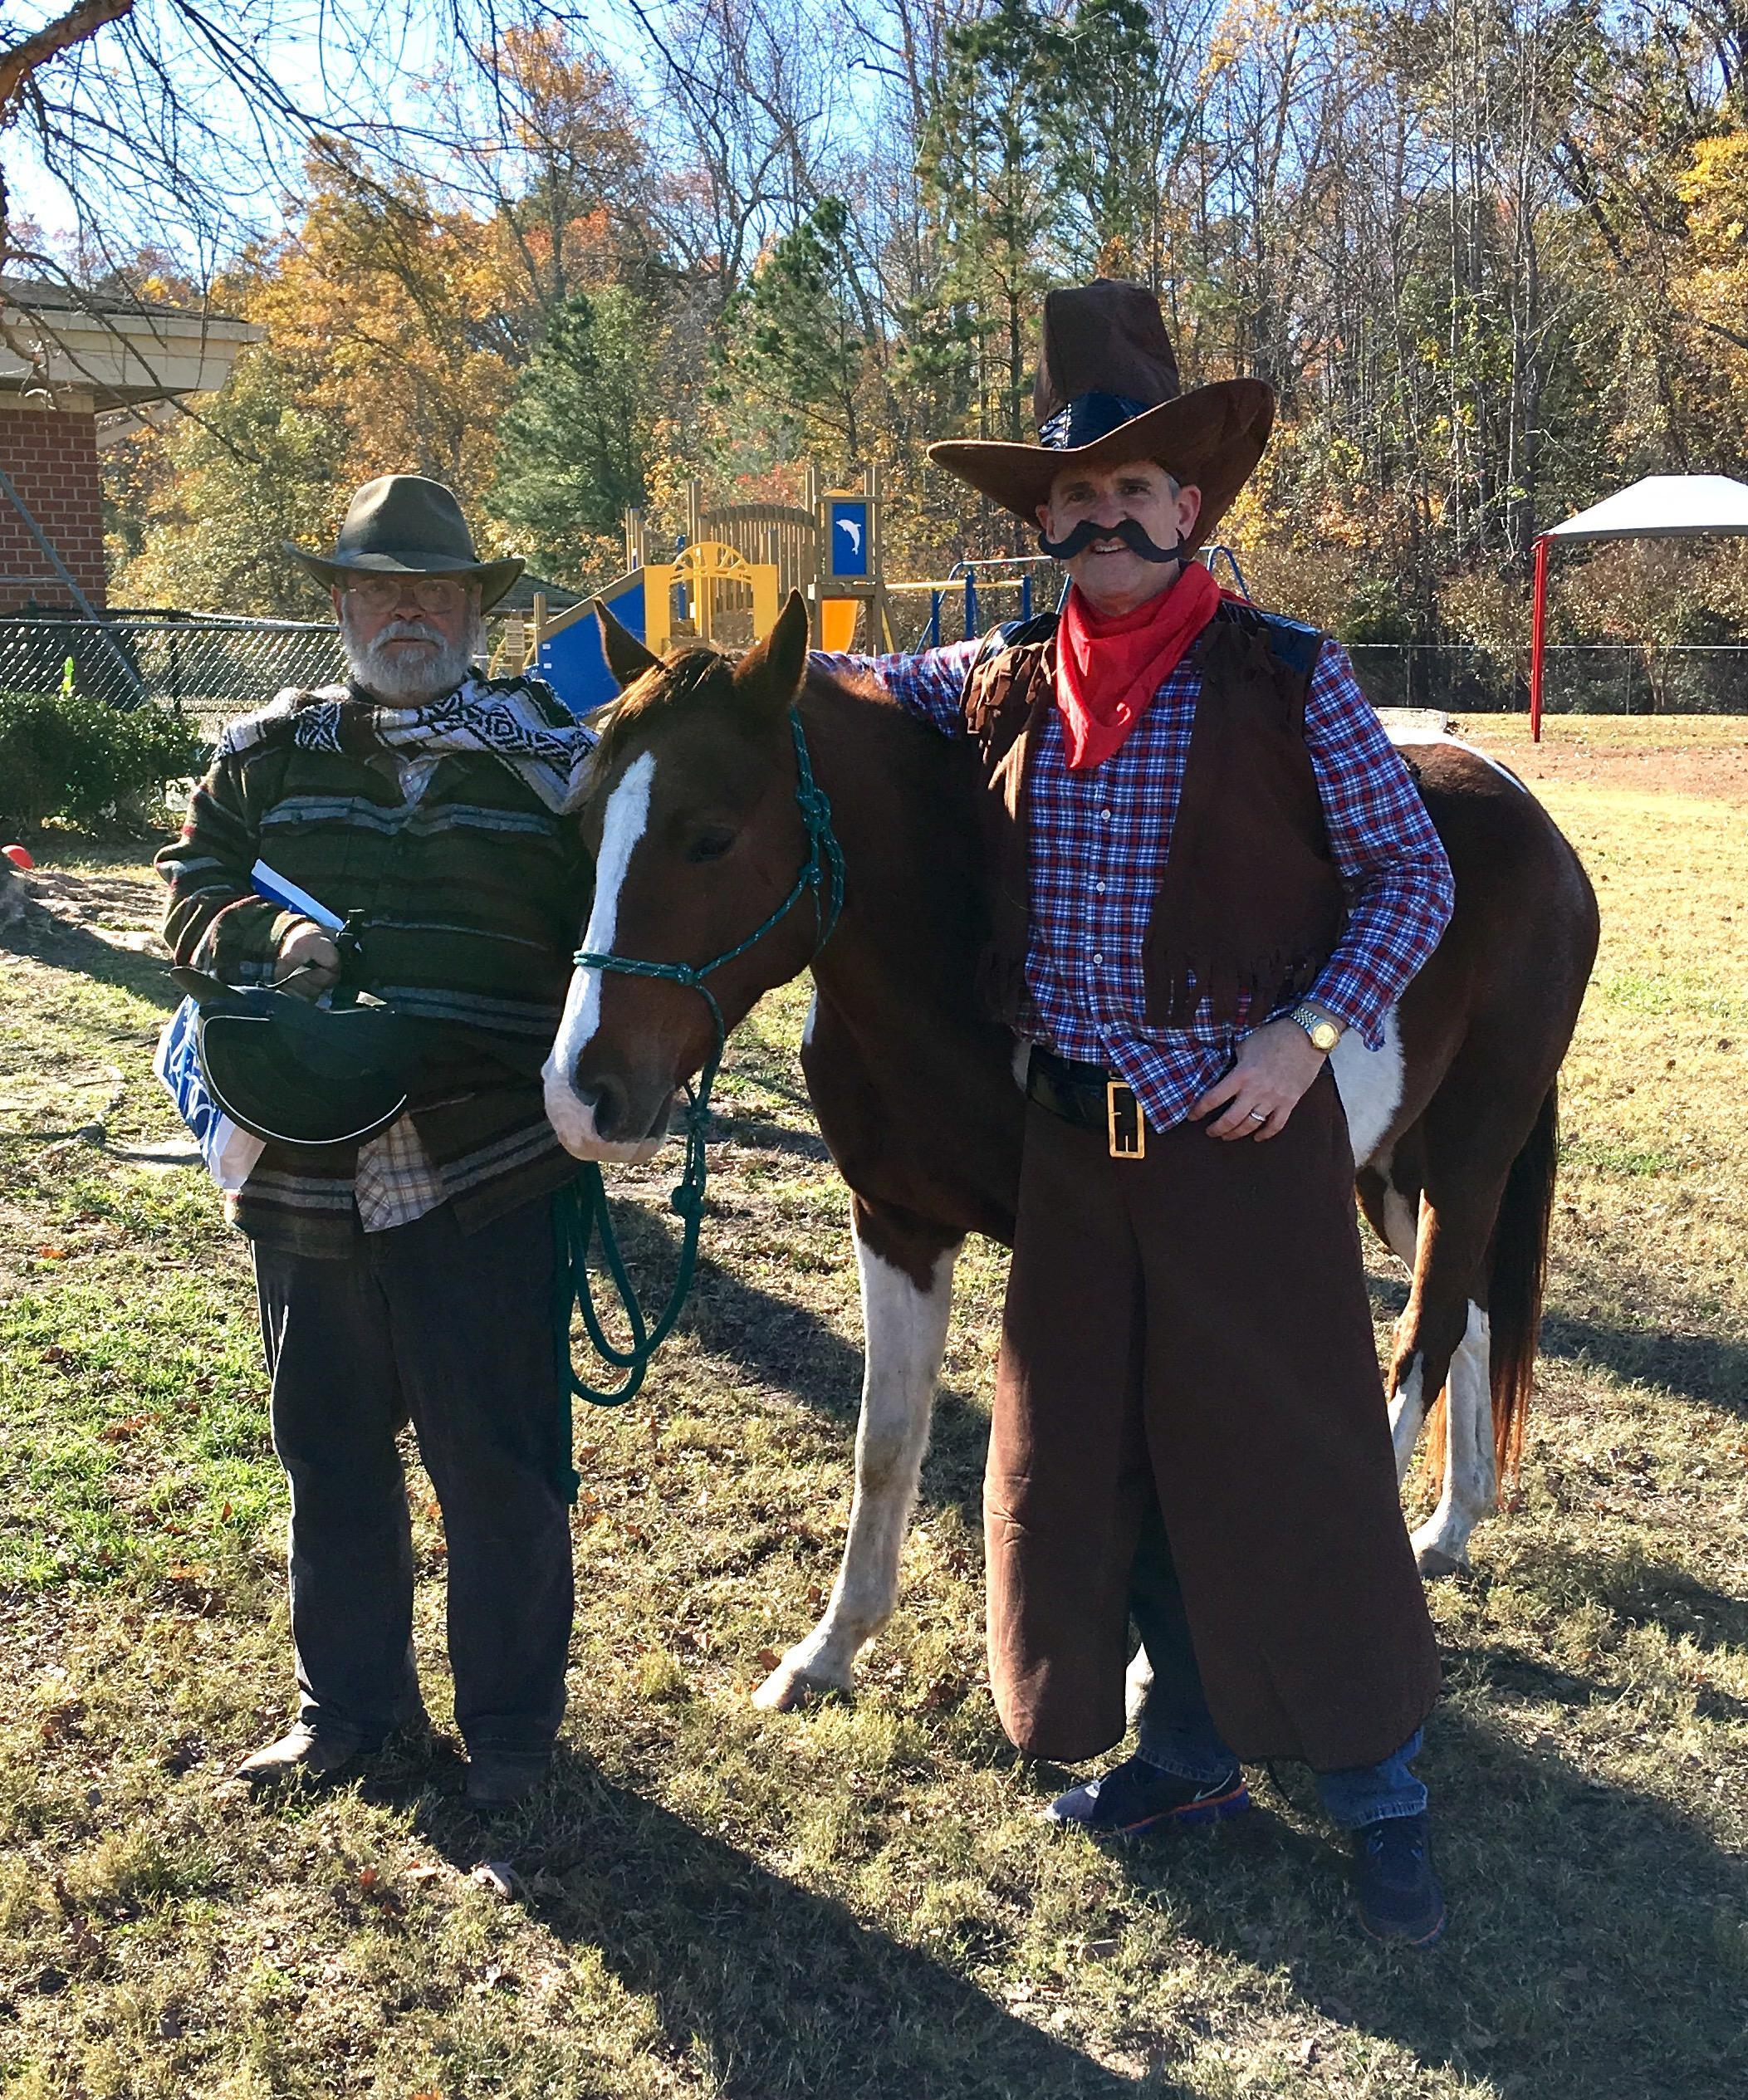 mr. brennan dressed as a cowboy with a horse